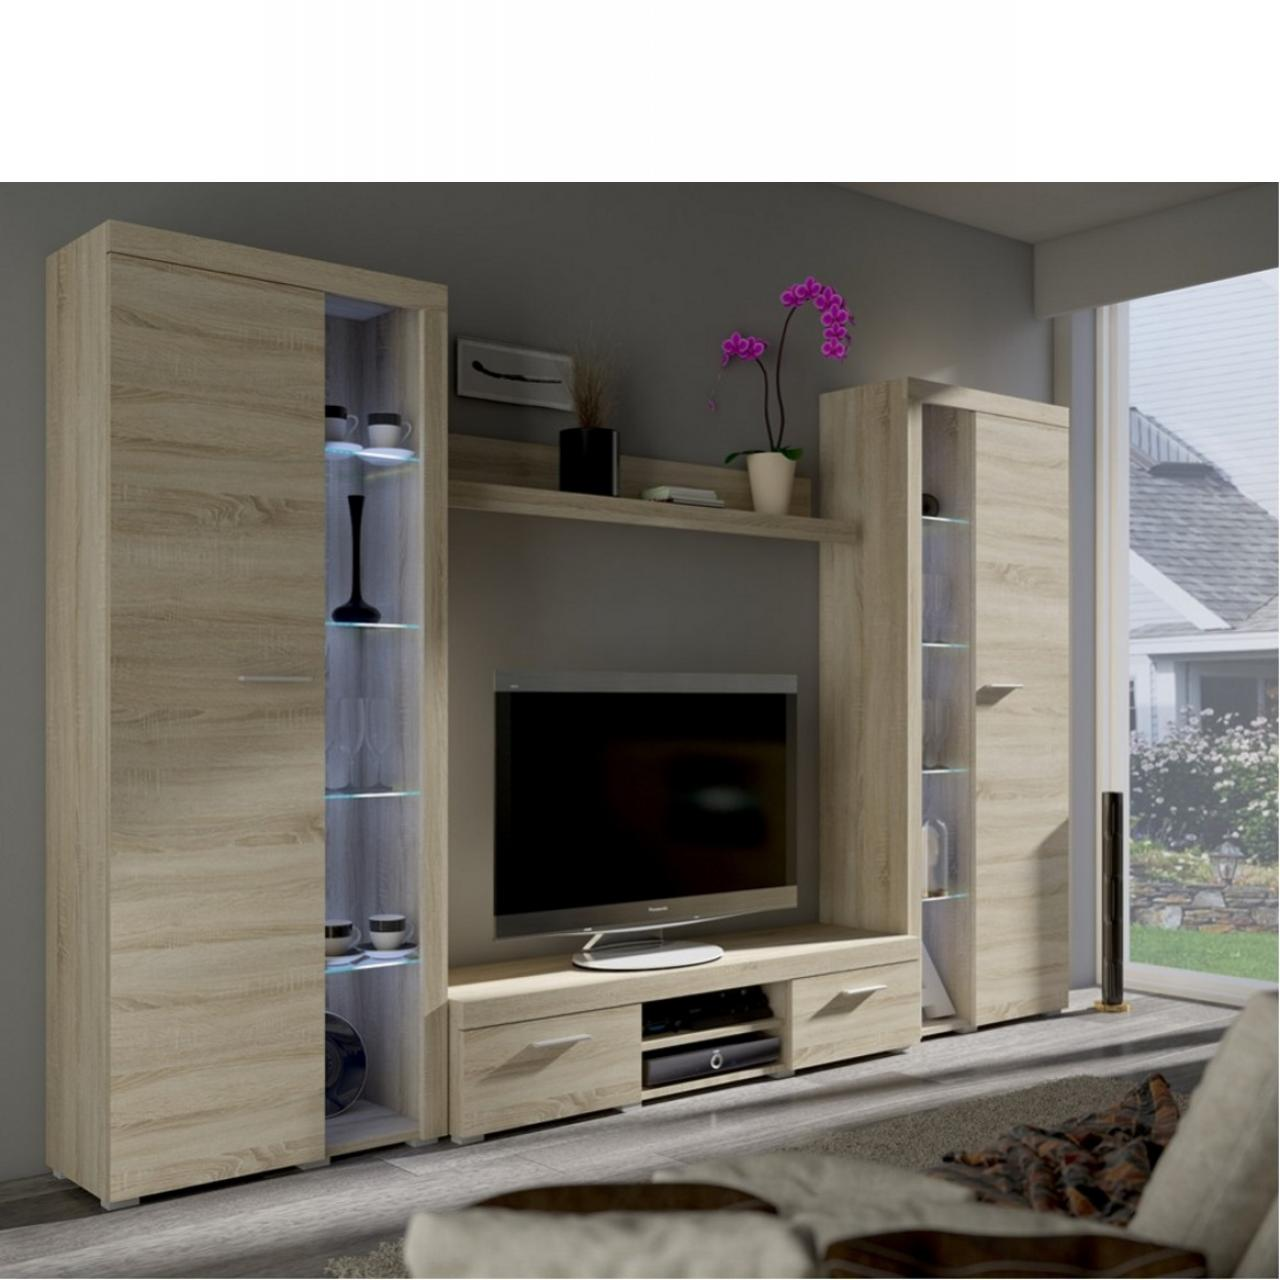 wohnwand rumca xl wohnw nde wohnen m bel j hnichen. Black Bedroom Furniture Sets. Home Design Ideas